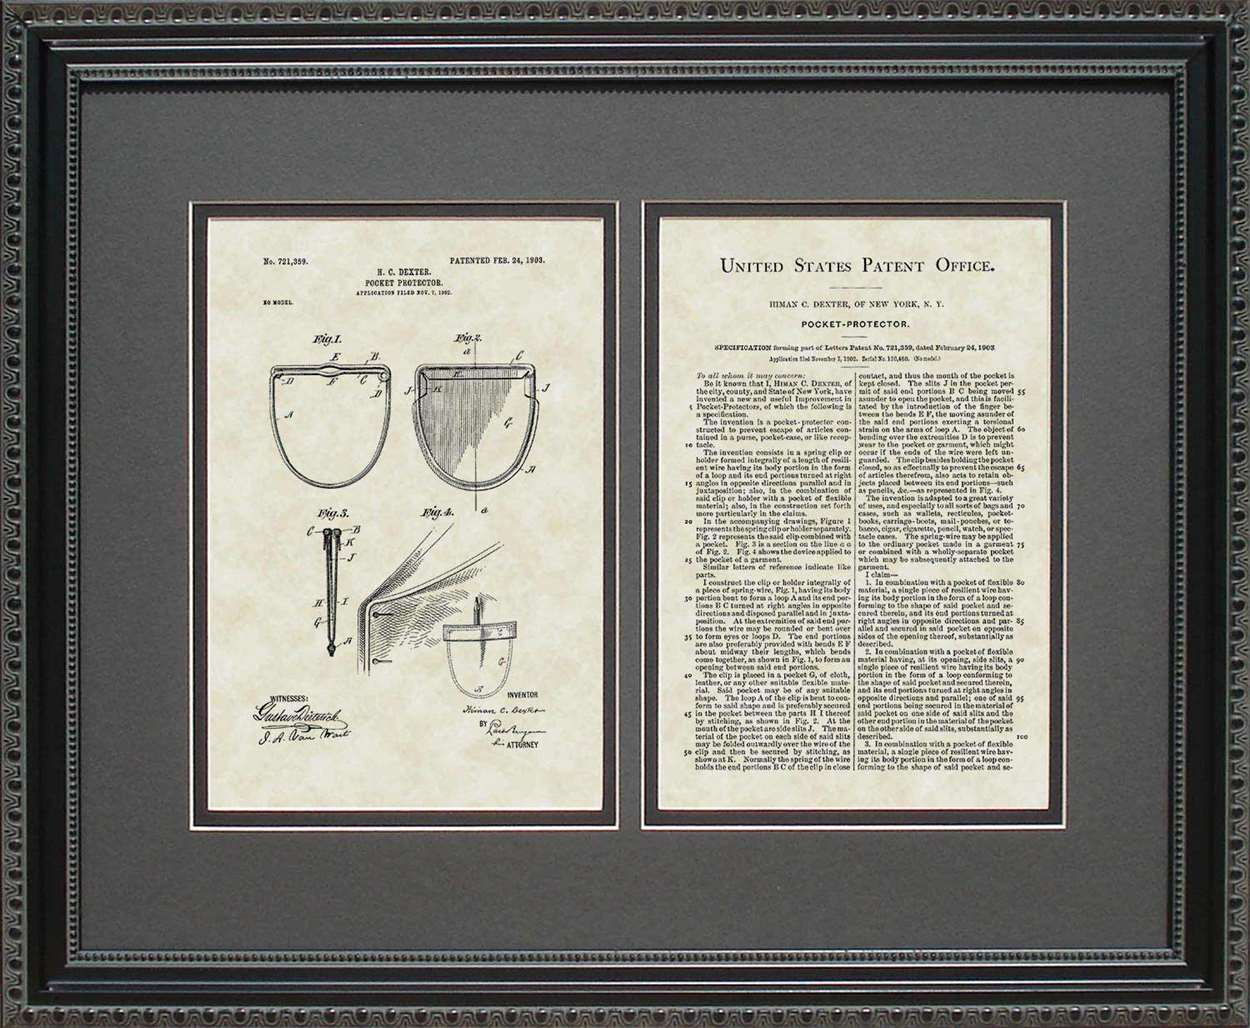 Pocket Protector Patent, Art & Copy, Dexter, 1903, 16x20